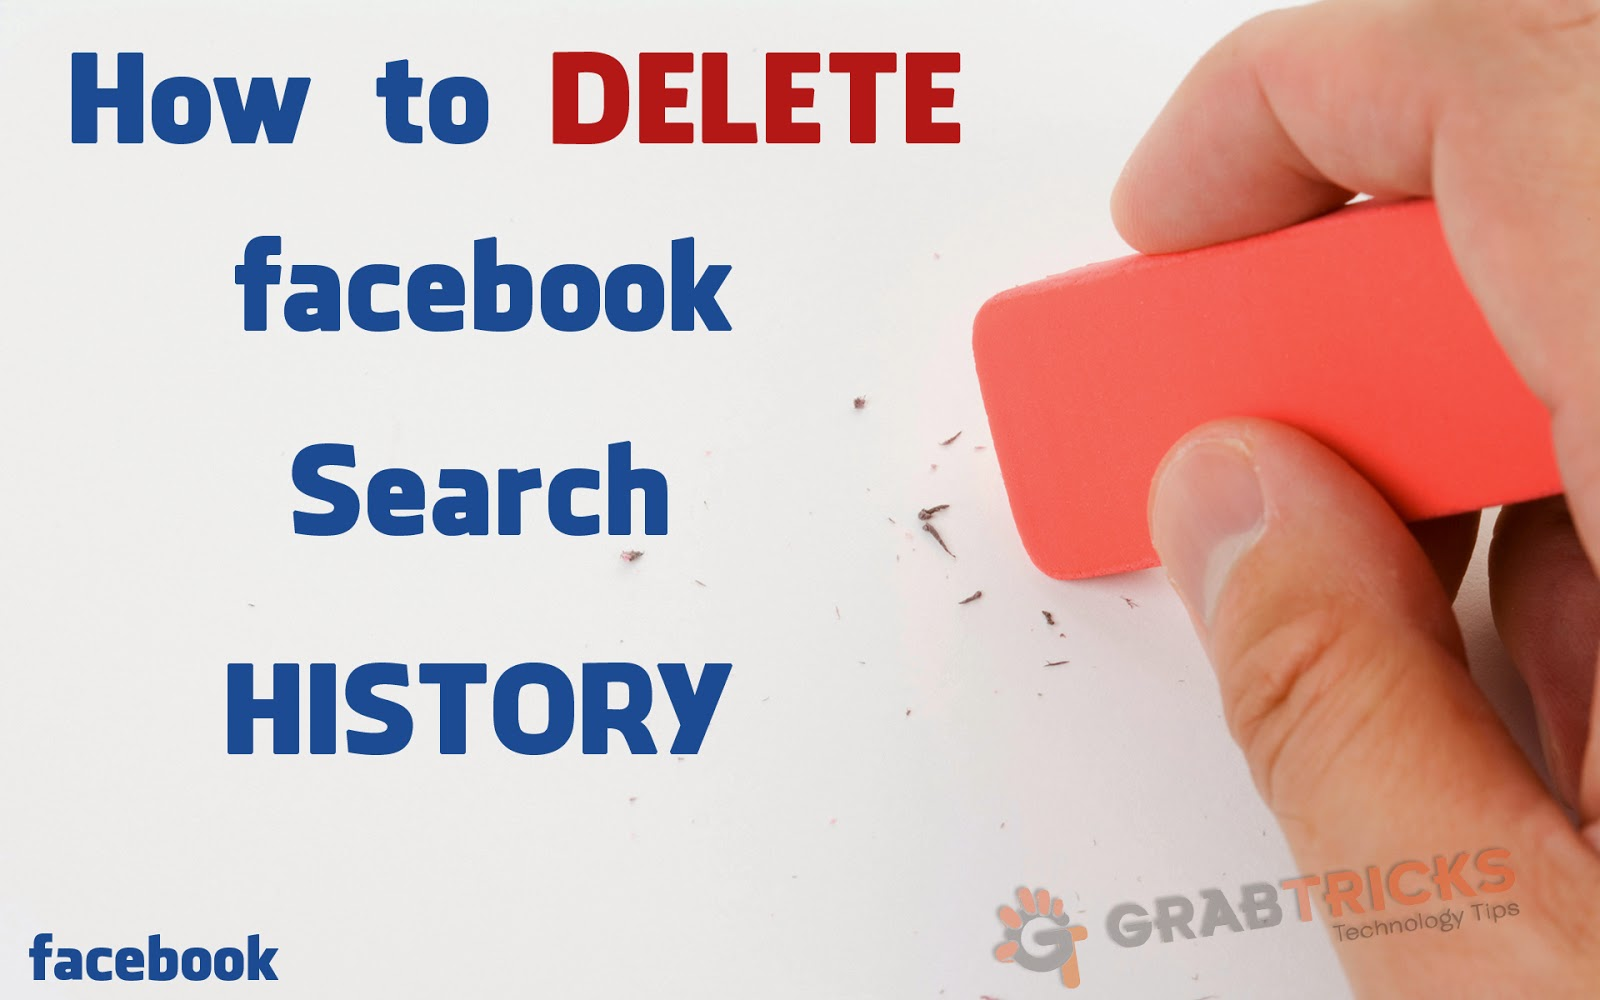 Facebook Search Can Be Used For Searching Different Things That Is Private  For You And Facebook